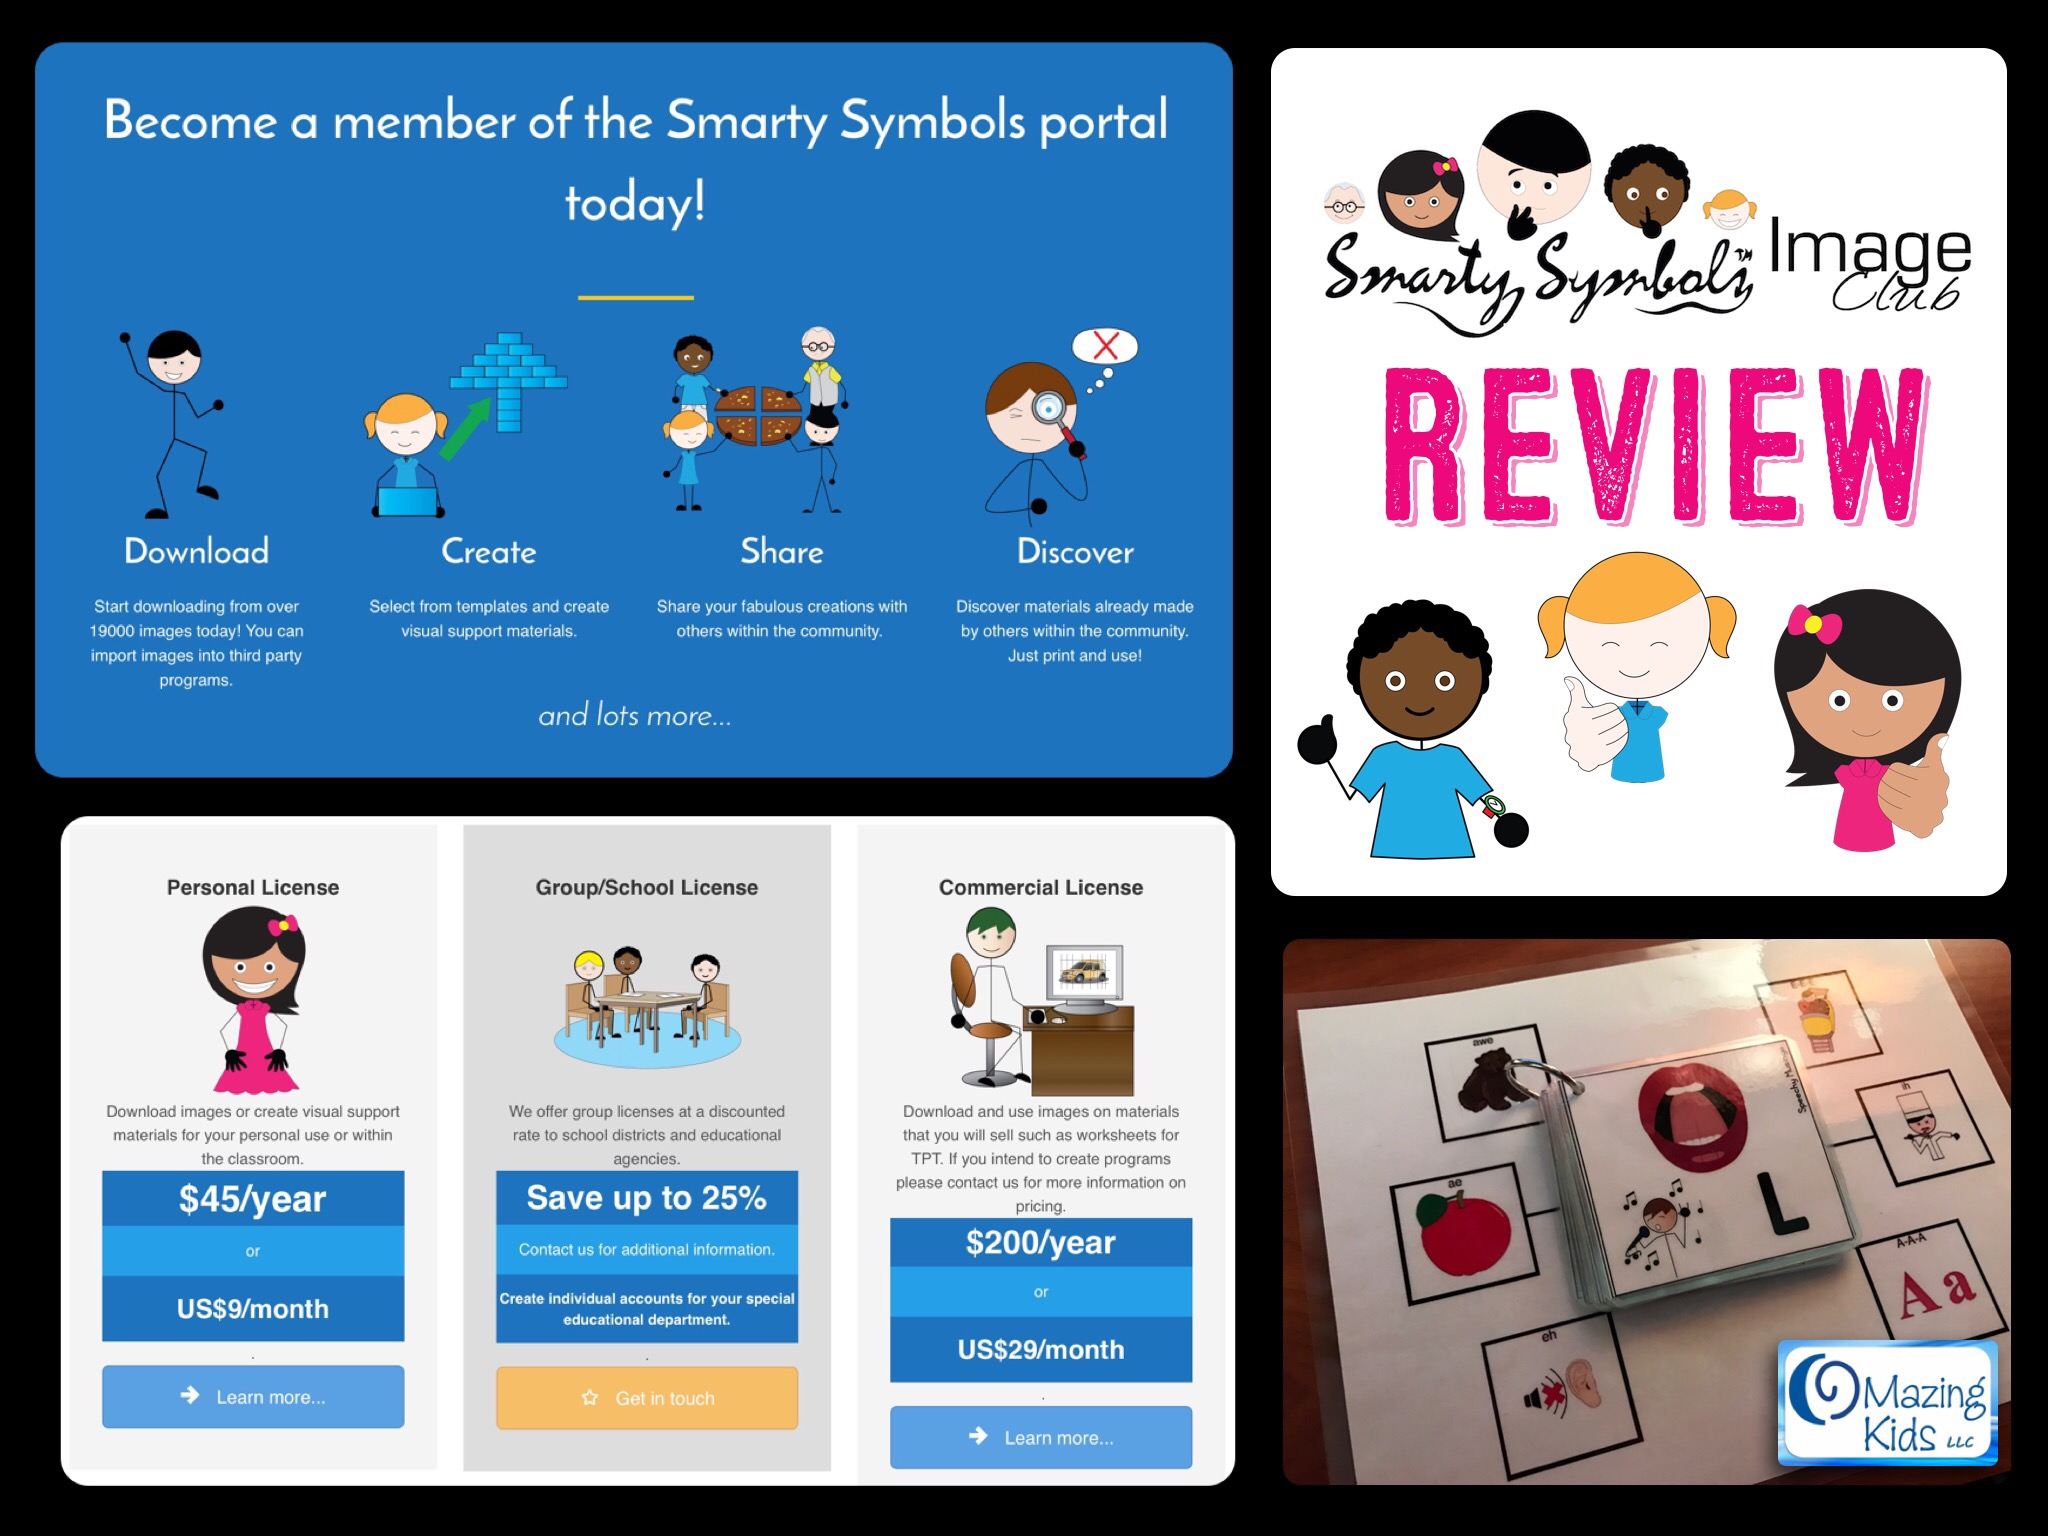 Review Smarty Symbols Image Club Omazing Kids